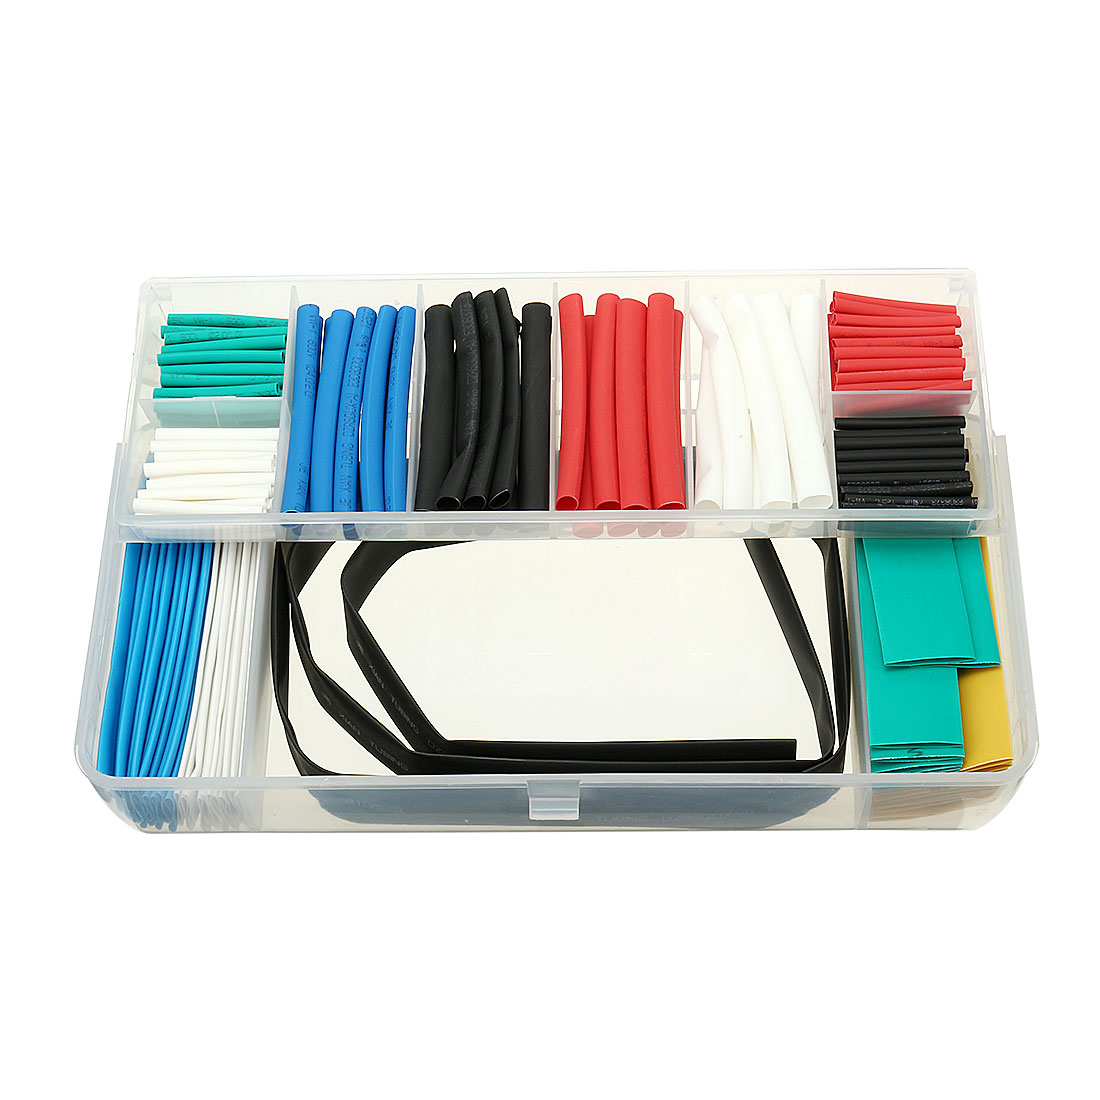 171Pcs 2:1 Heat Shrink Tubing Tube Sleeving Wire Cable 10 Sizes 6 Color